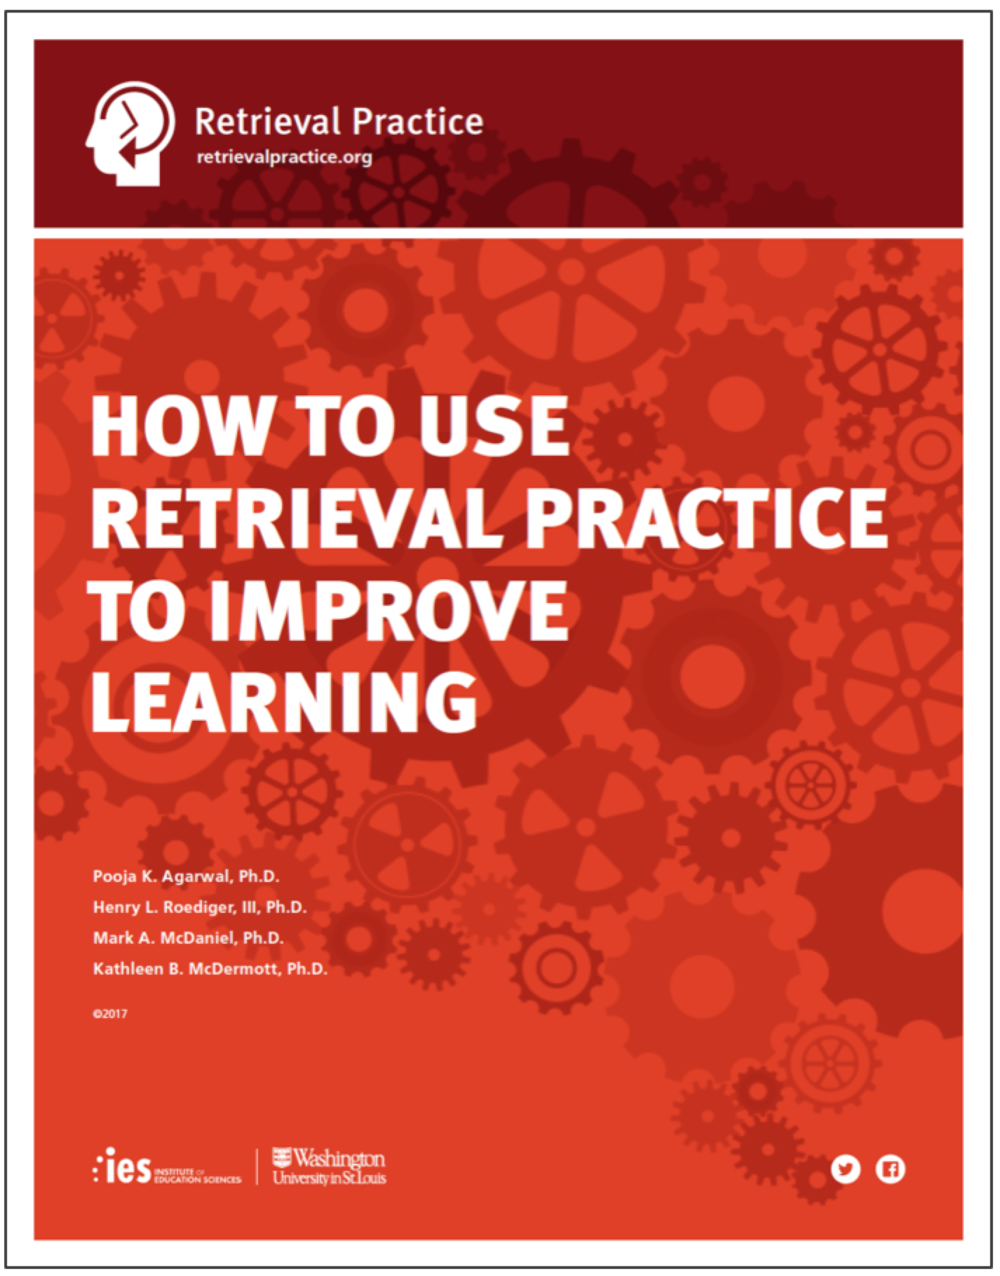 Download the Retrieval Practice Guide